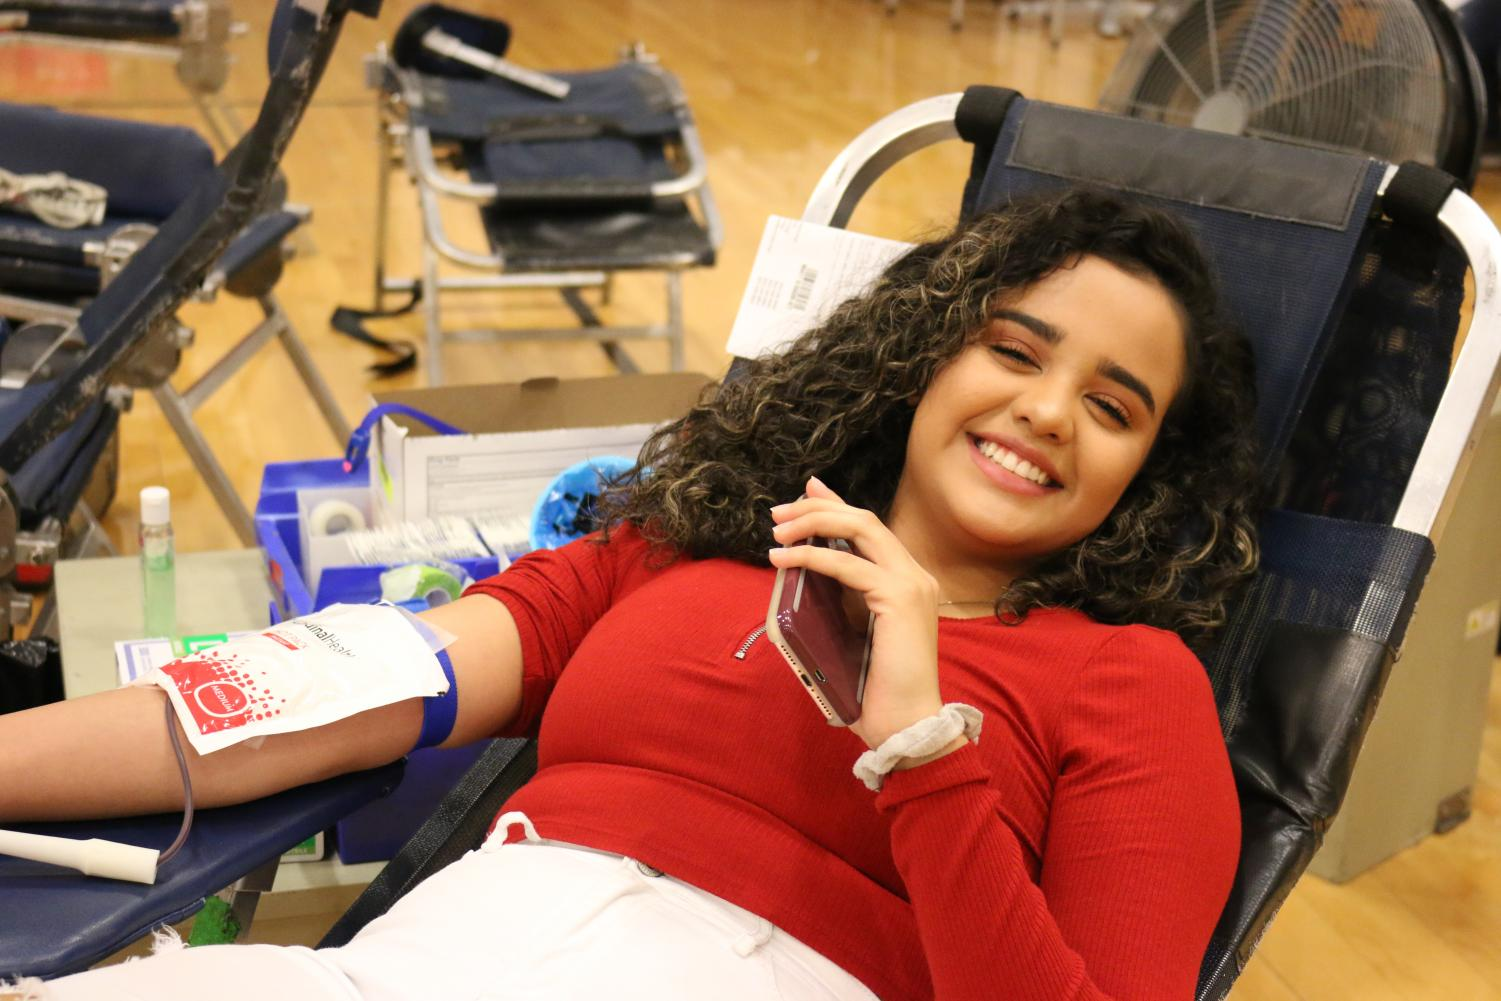 Senior Jaelen Lopez smiles while donating blood during the fourth annual blood drive held in the auxiliary gym Sept. 11